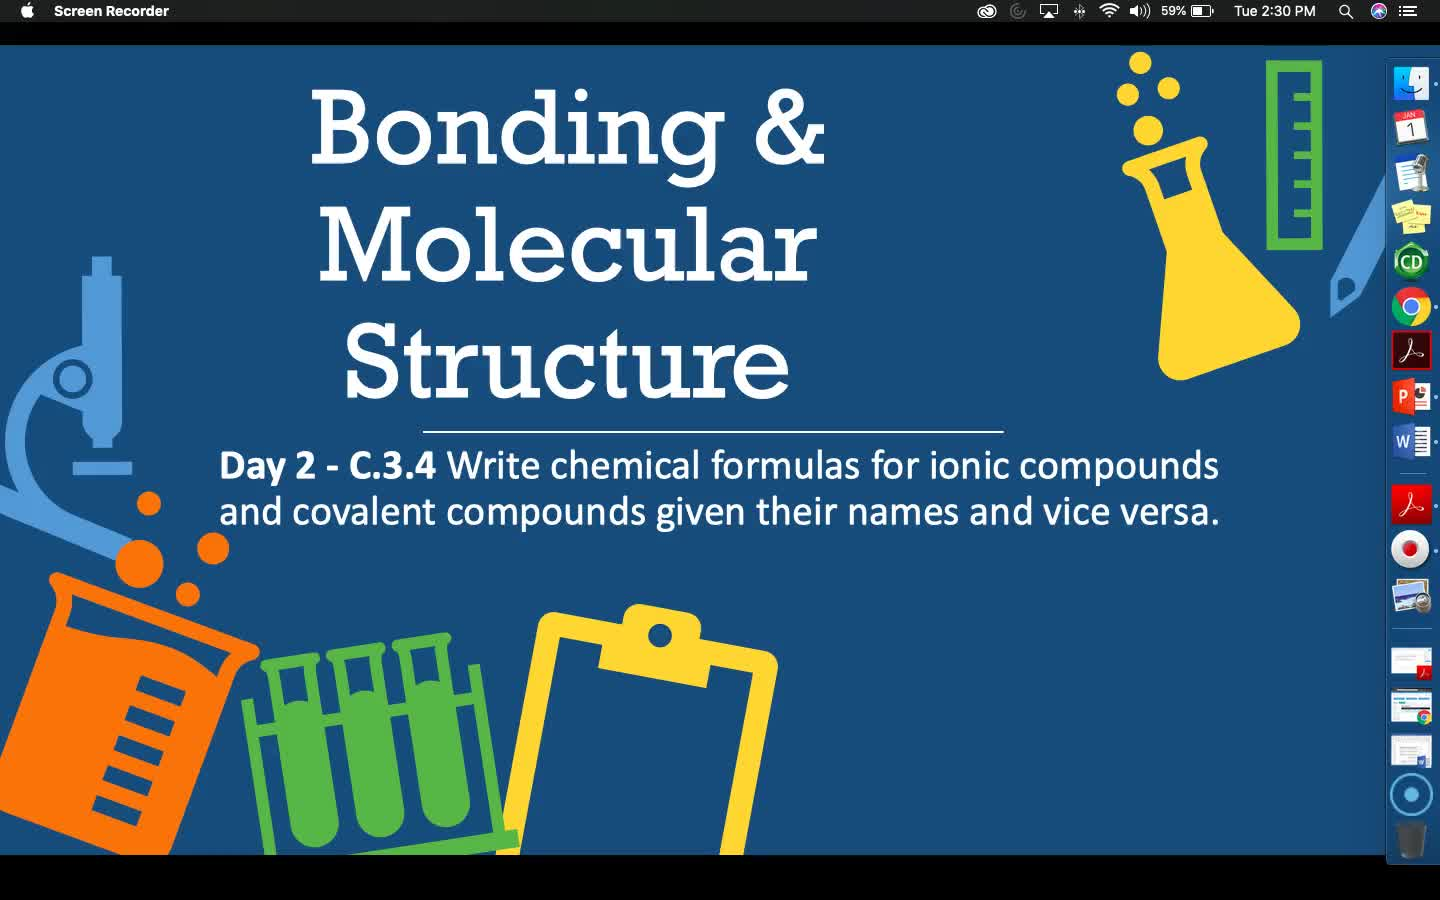 Bonding & Molecular Structure - Lesson 6